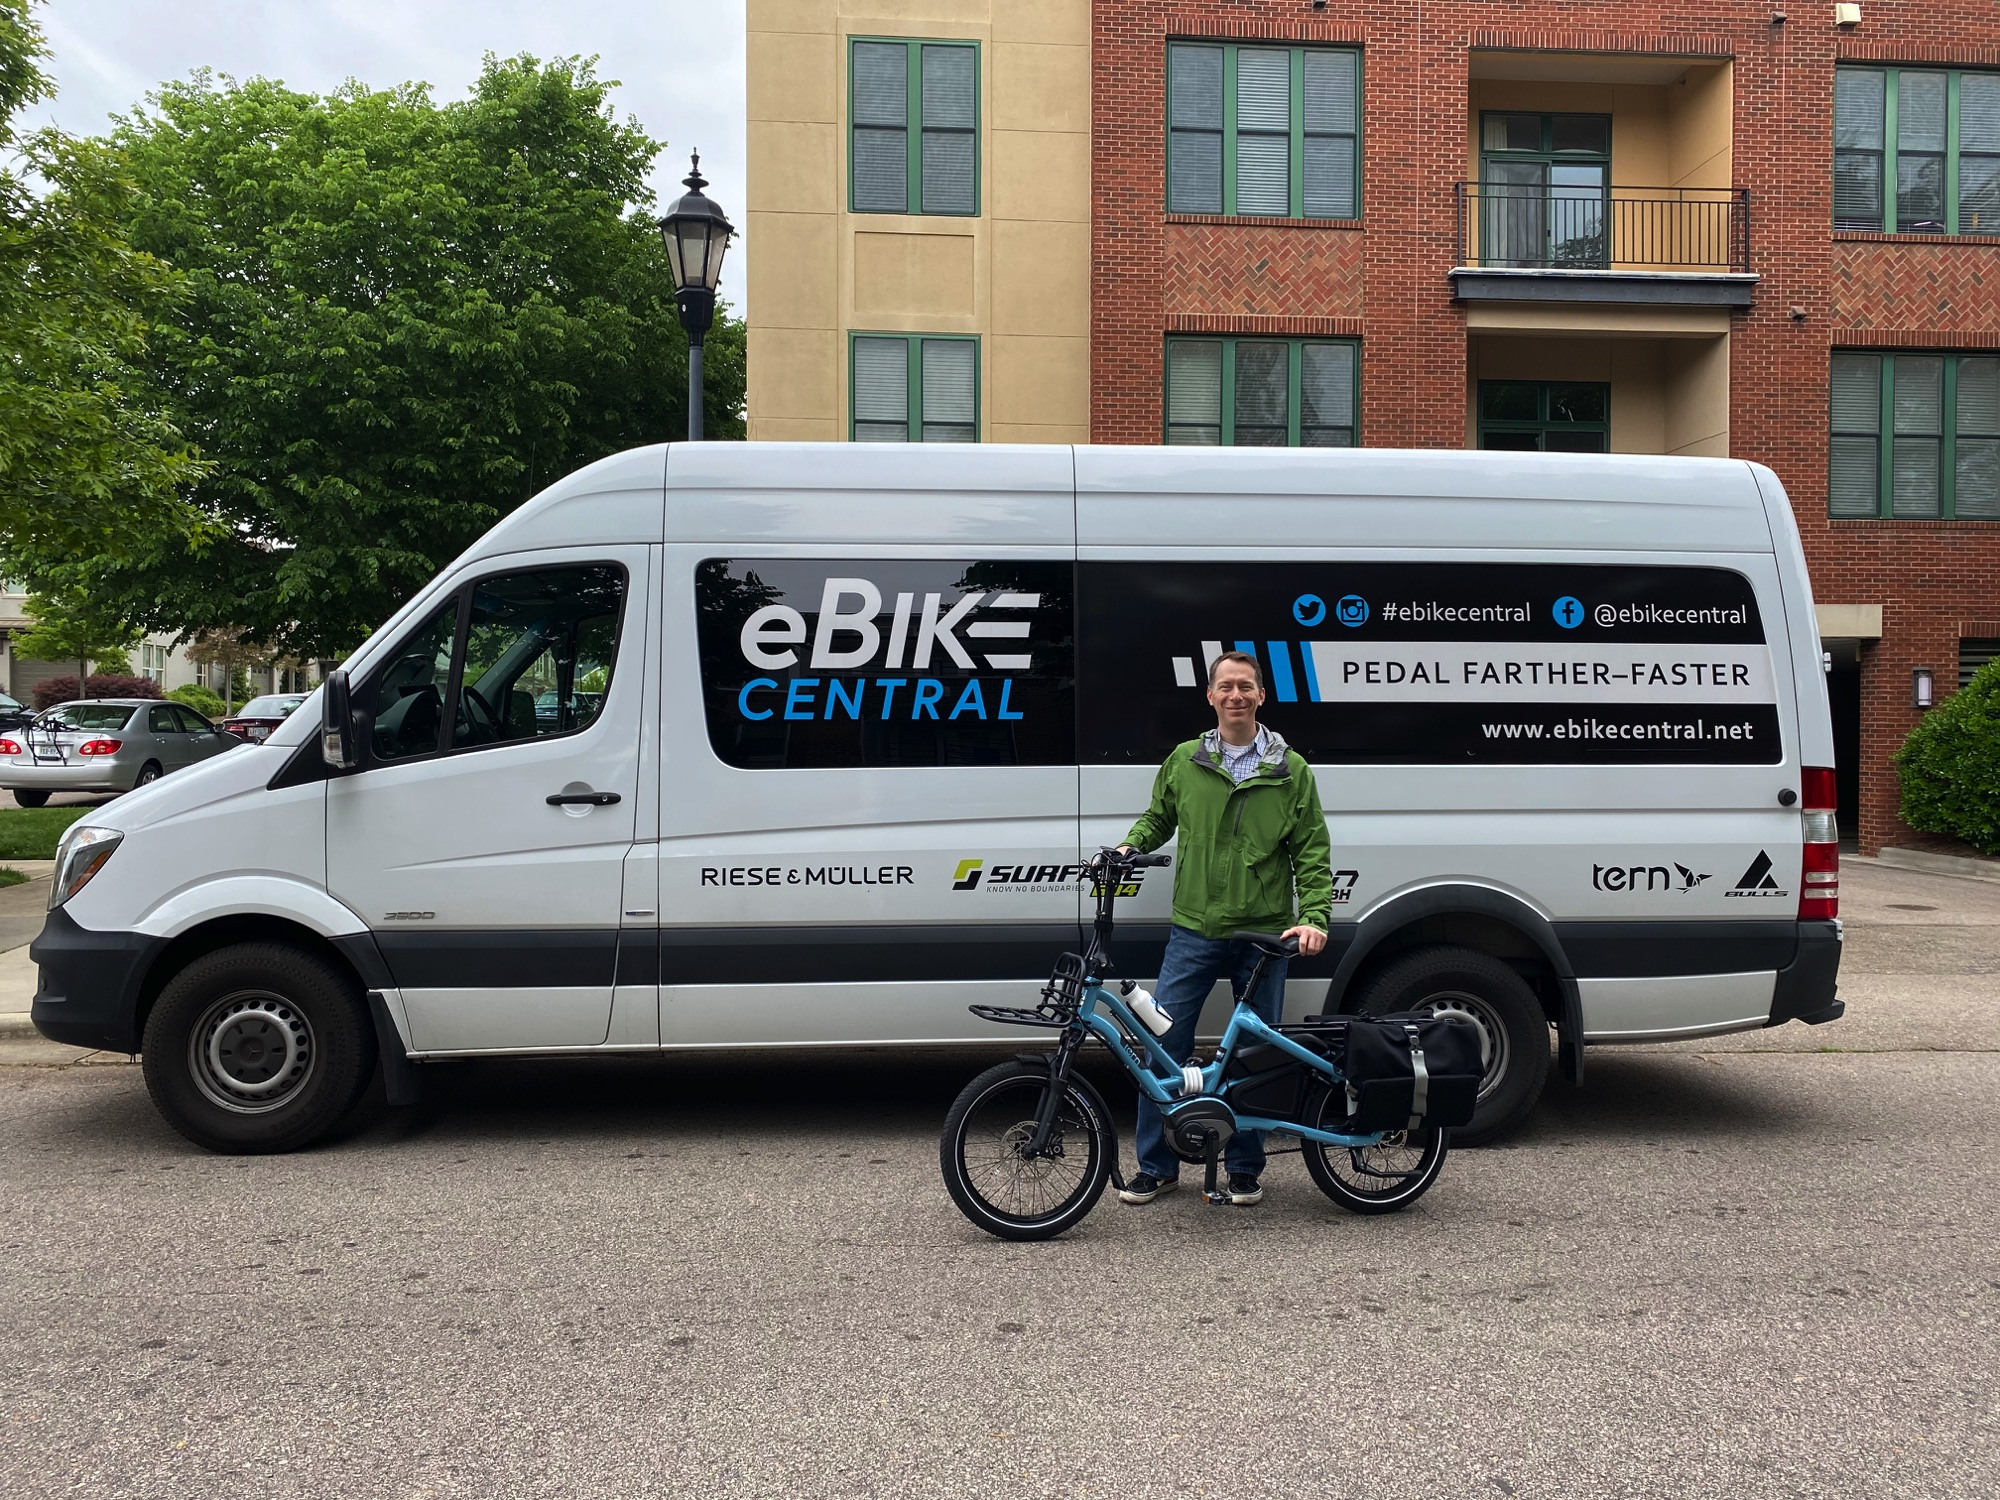 eBike Central in Durham NC for a TERN Delivery